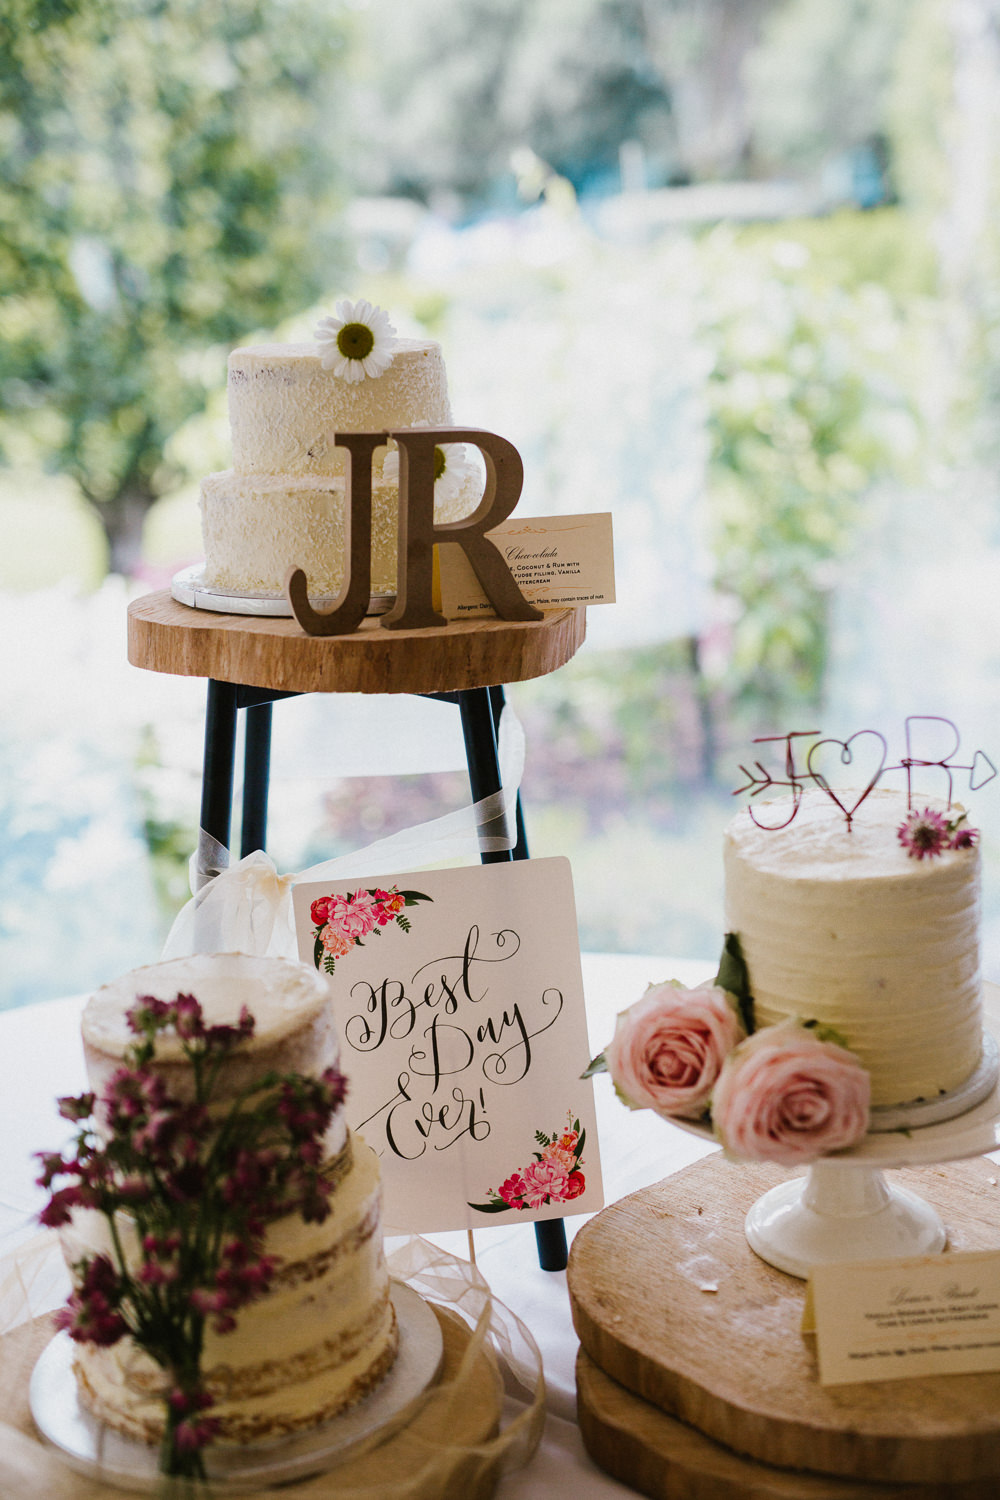 Cake Table Initials Buttercream Tiered Anna Carriga Wedding Honey and the Moon Photography